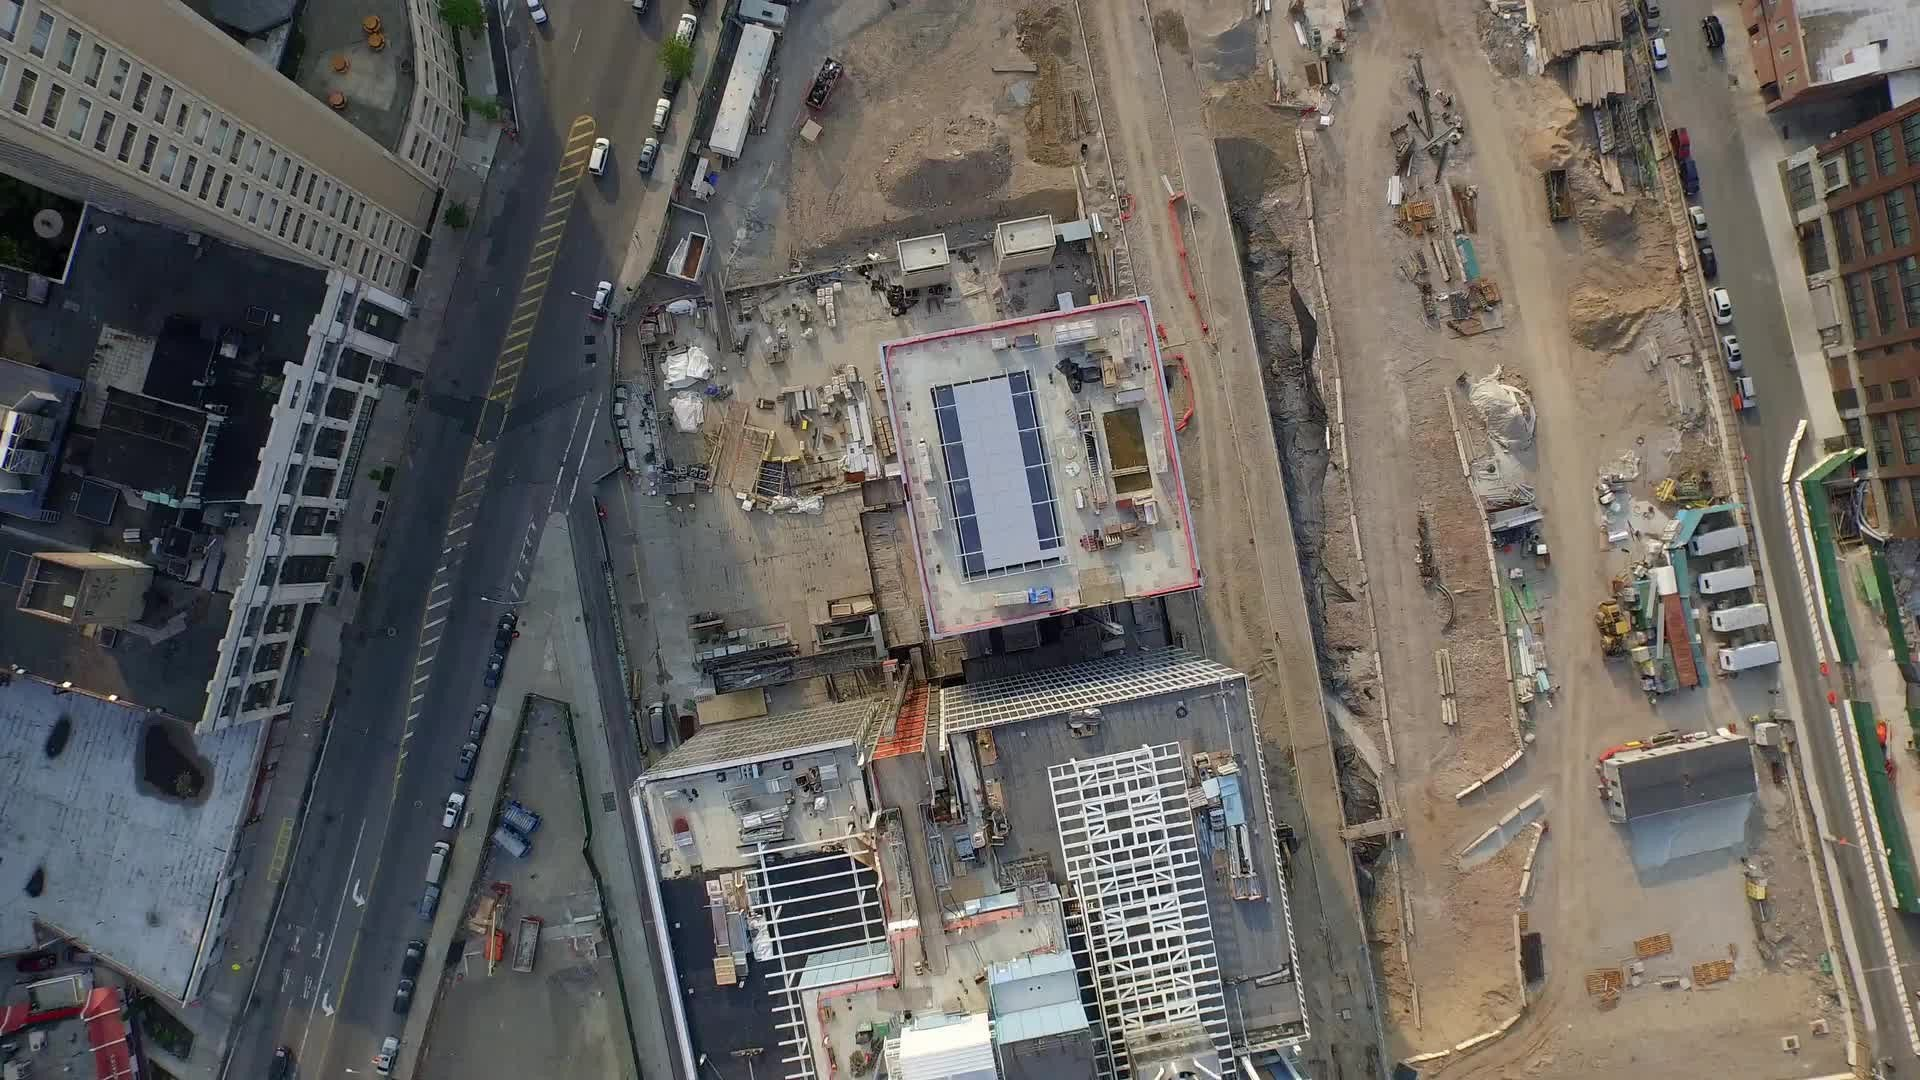 Harlem construction site over Uptown Manhattan 4K NYC